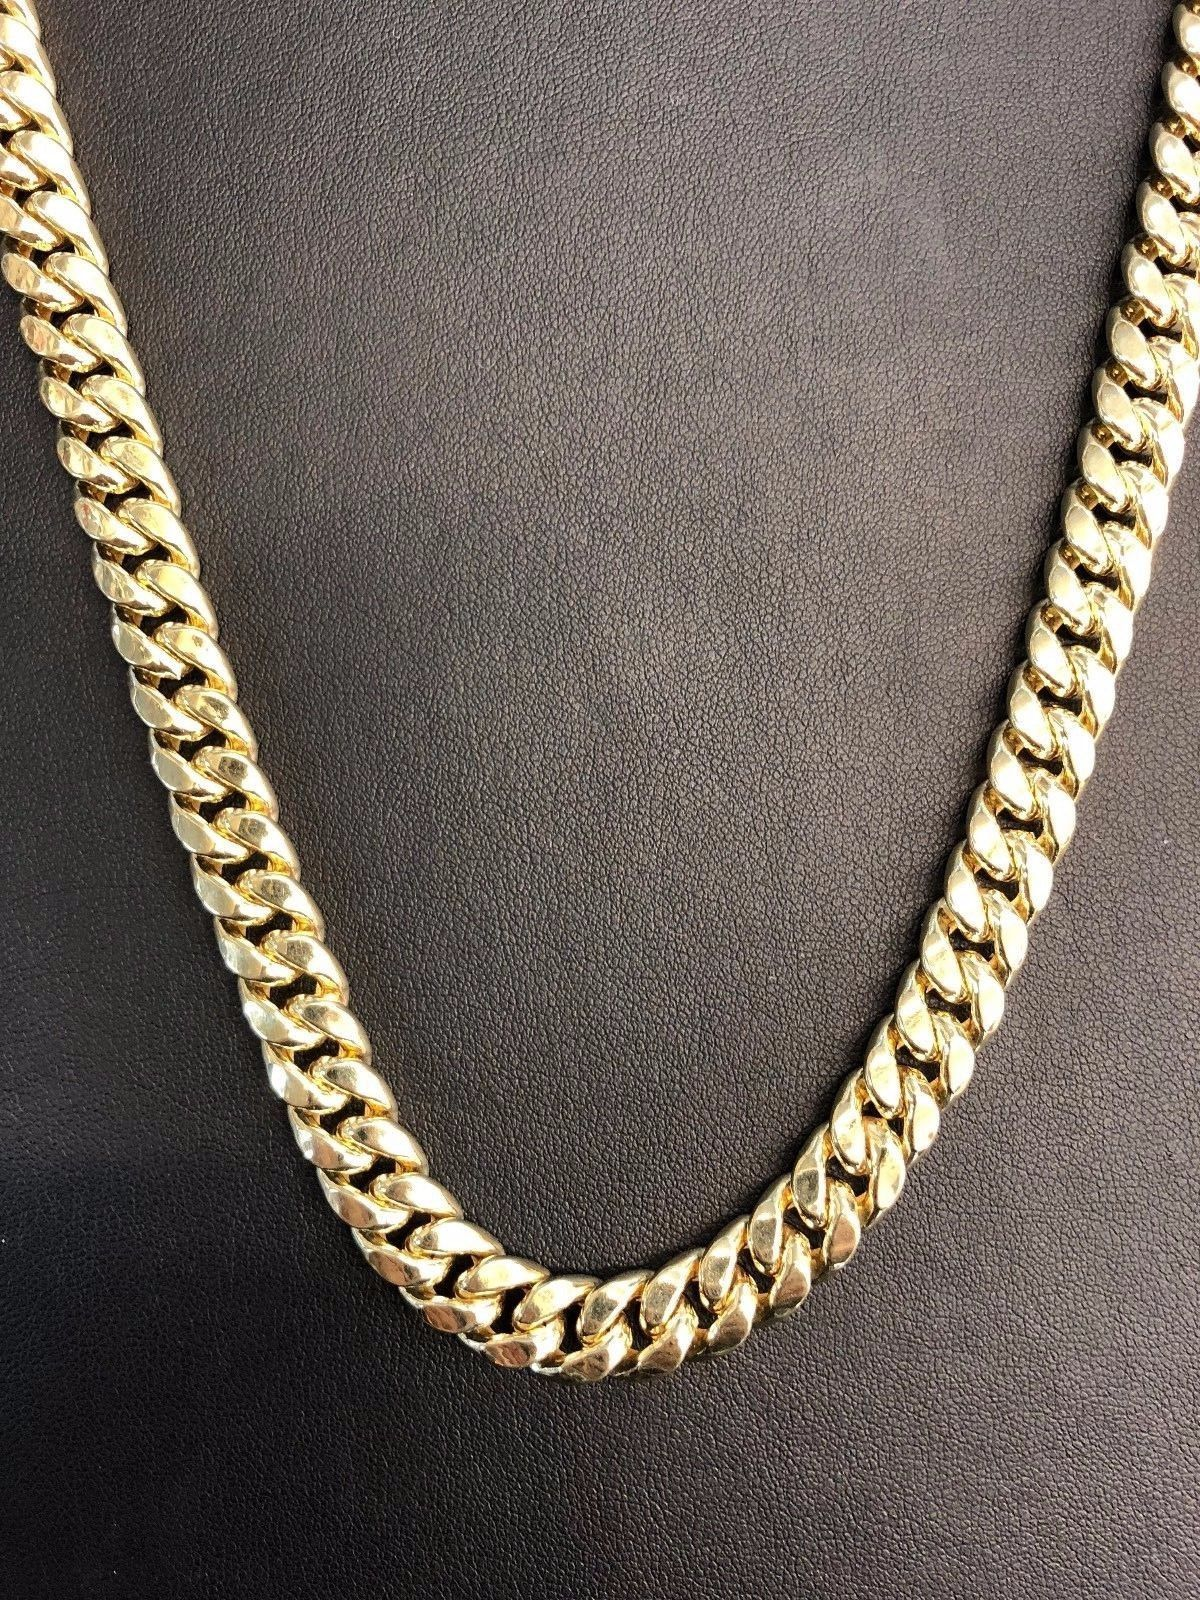 """10K Yellow Gold Hollow 6mm Miami Cuban Chain Necklace 24"""""""